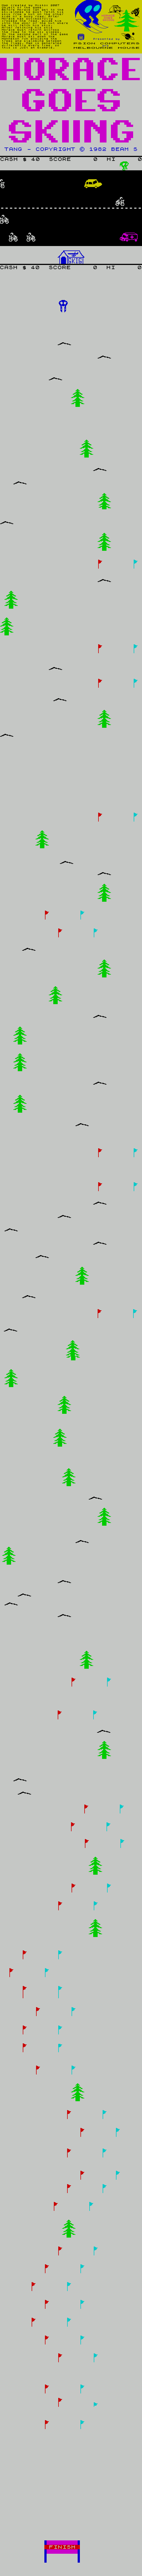 Horace Goes Skiing Game Map